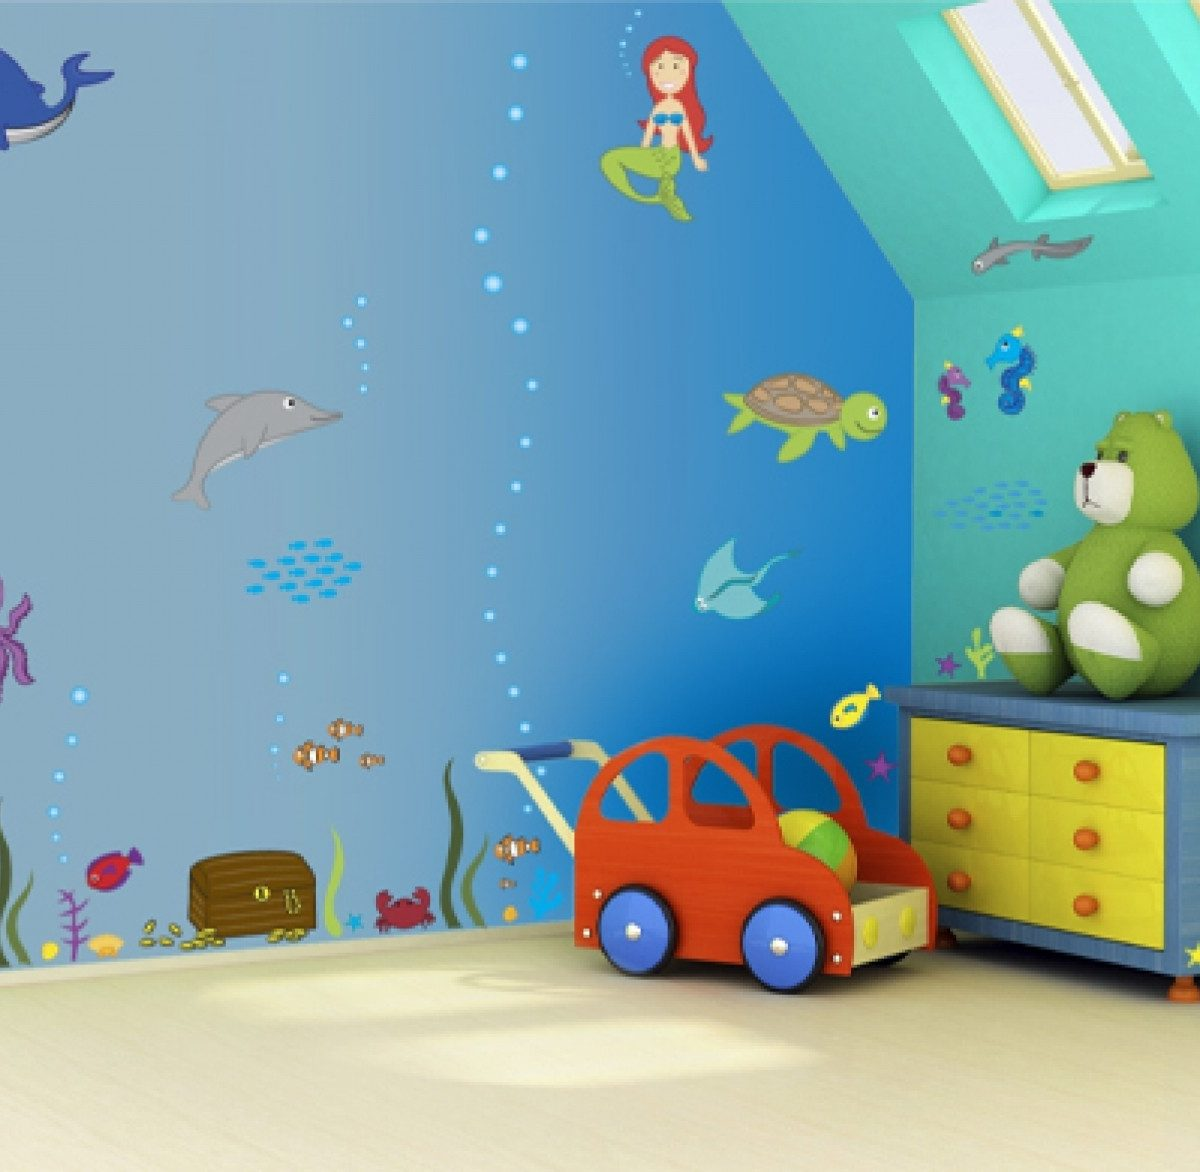 Wall Art Decorating Ideas For Children's Room | Kids Room with regard to Wall Art Ideas For Kids Bedroom